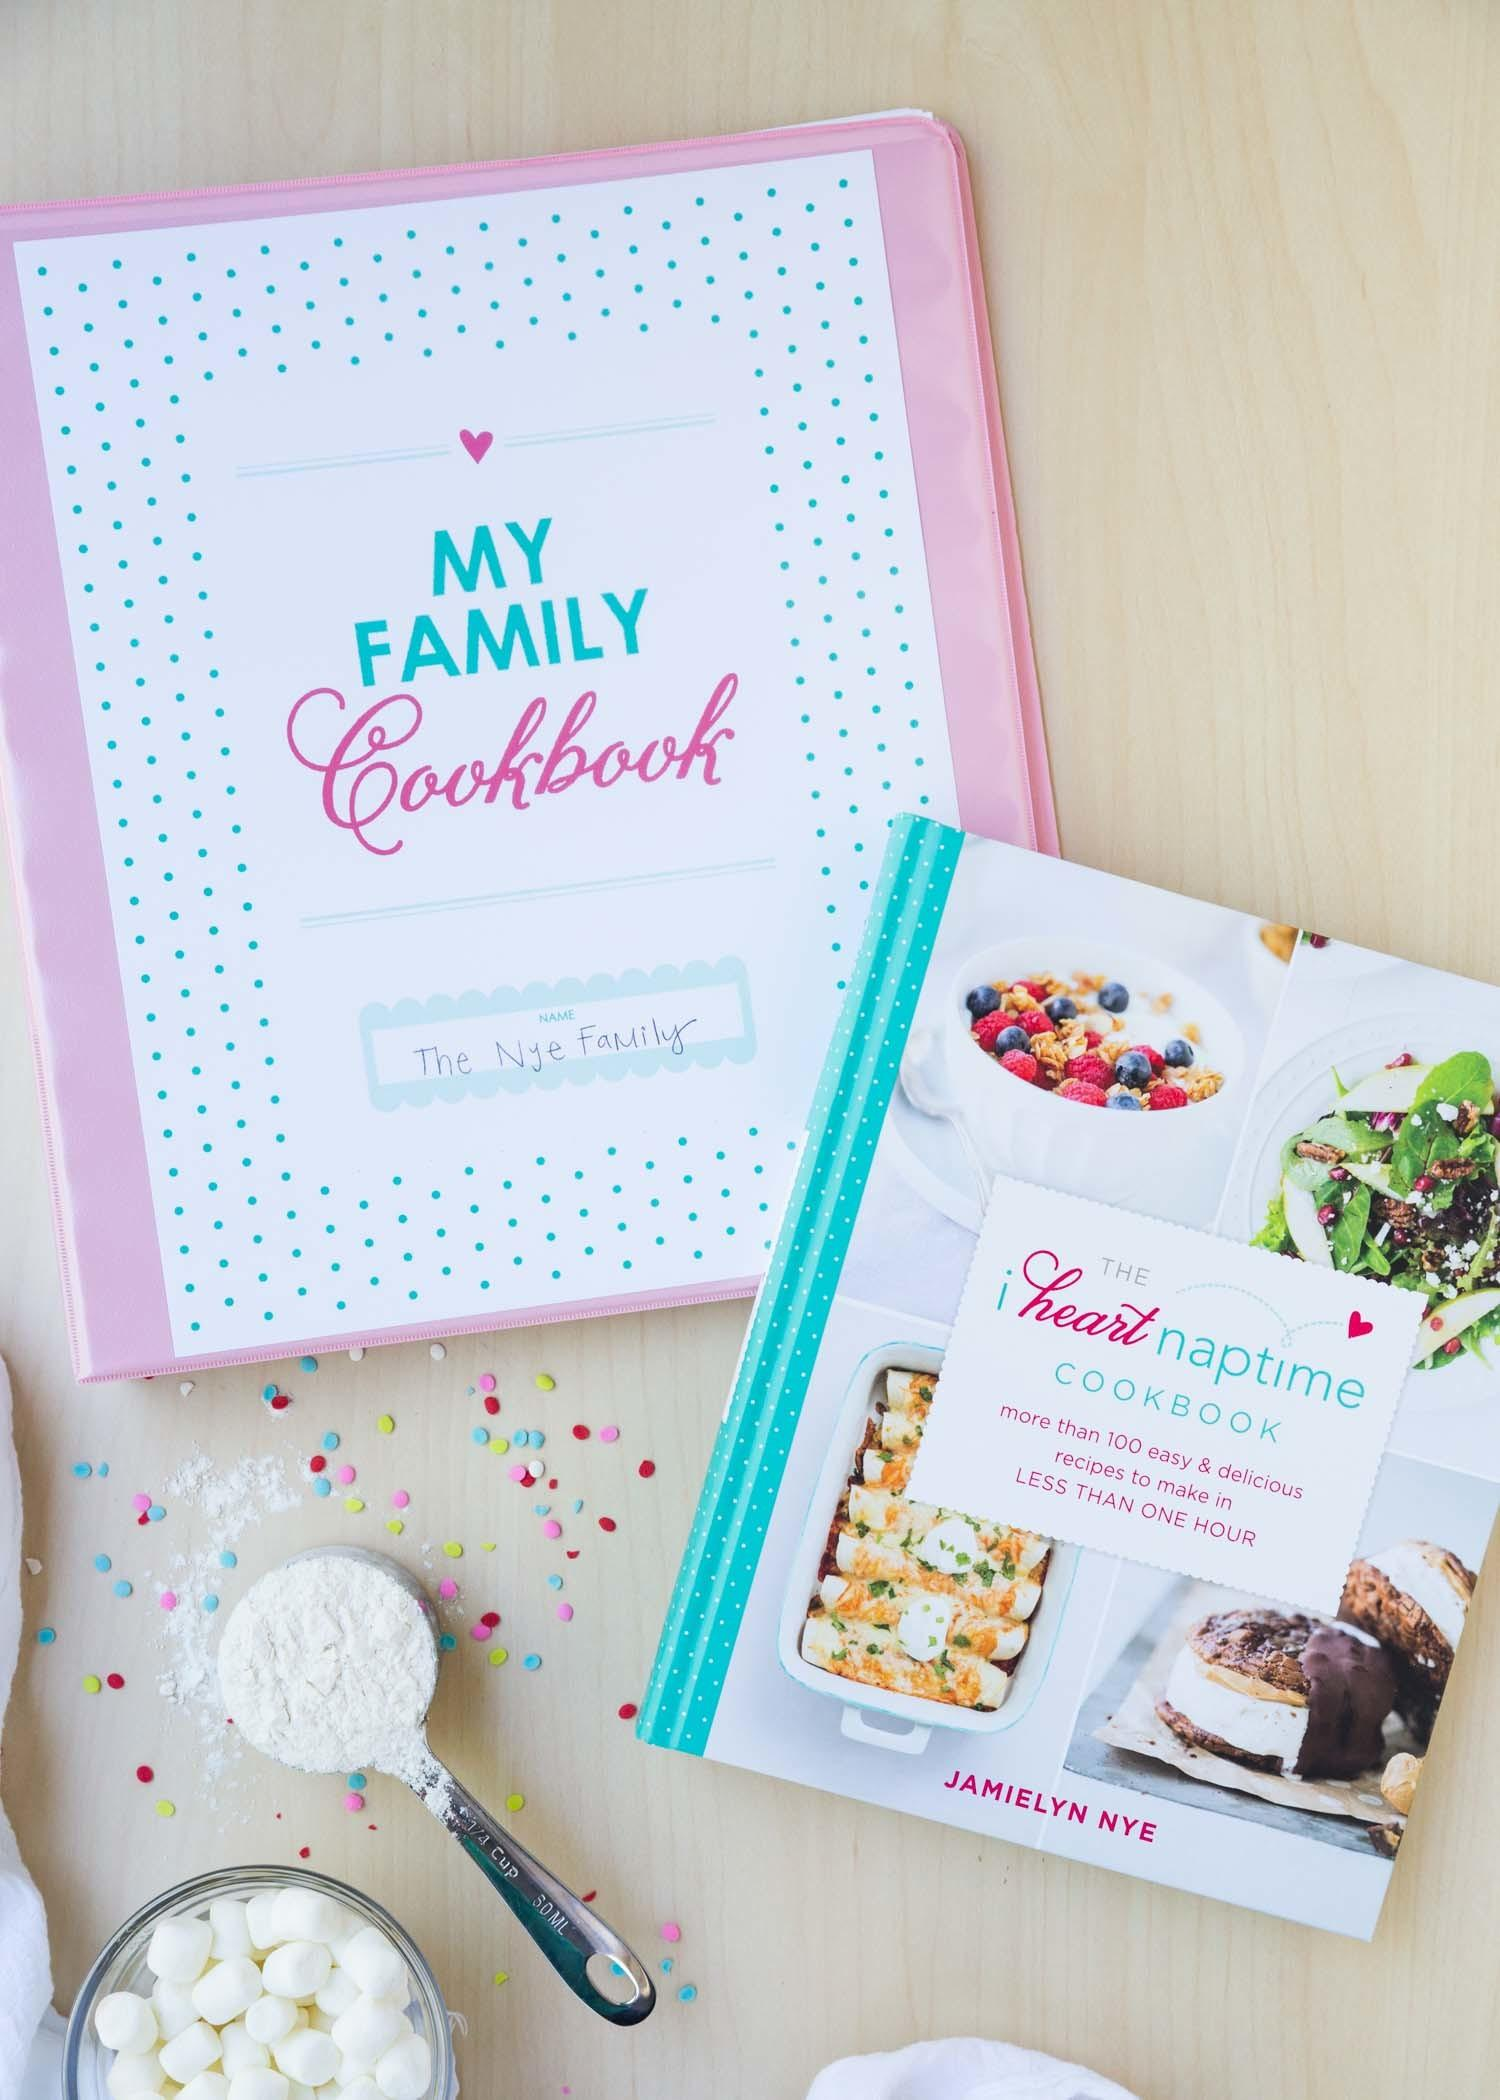 Diy Recipe Binder Heart Naptime Cookbook